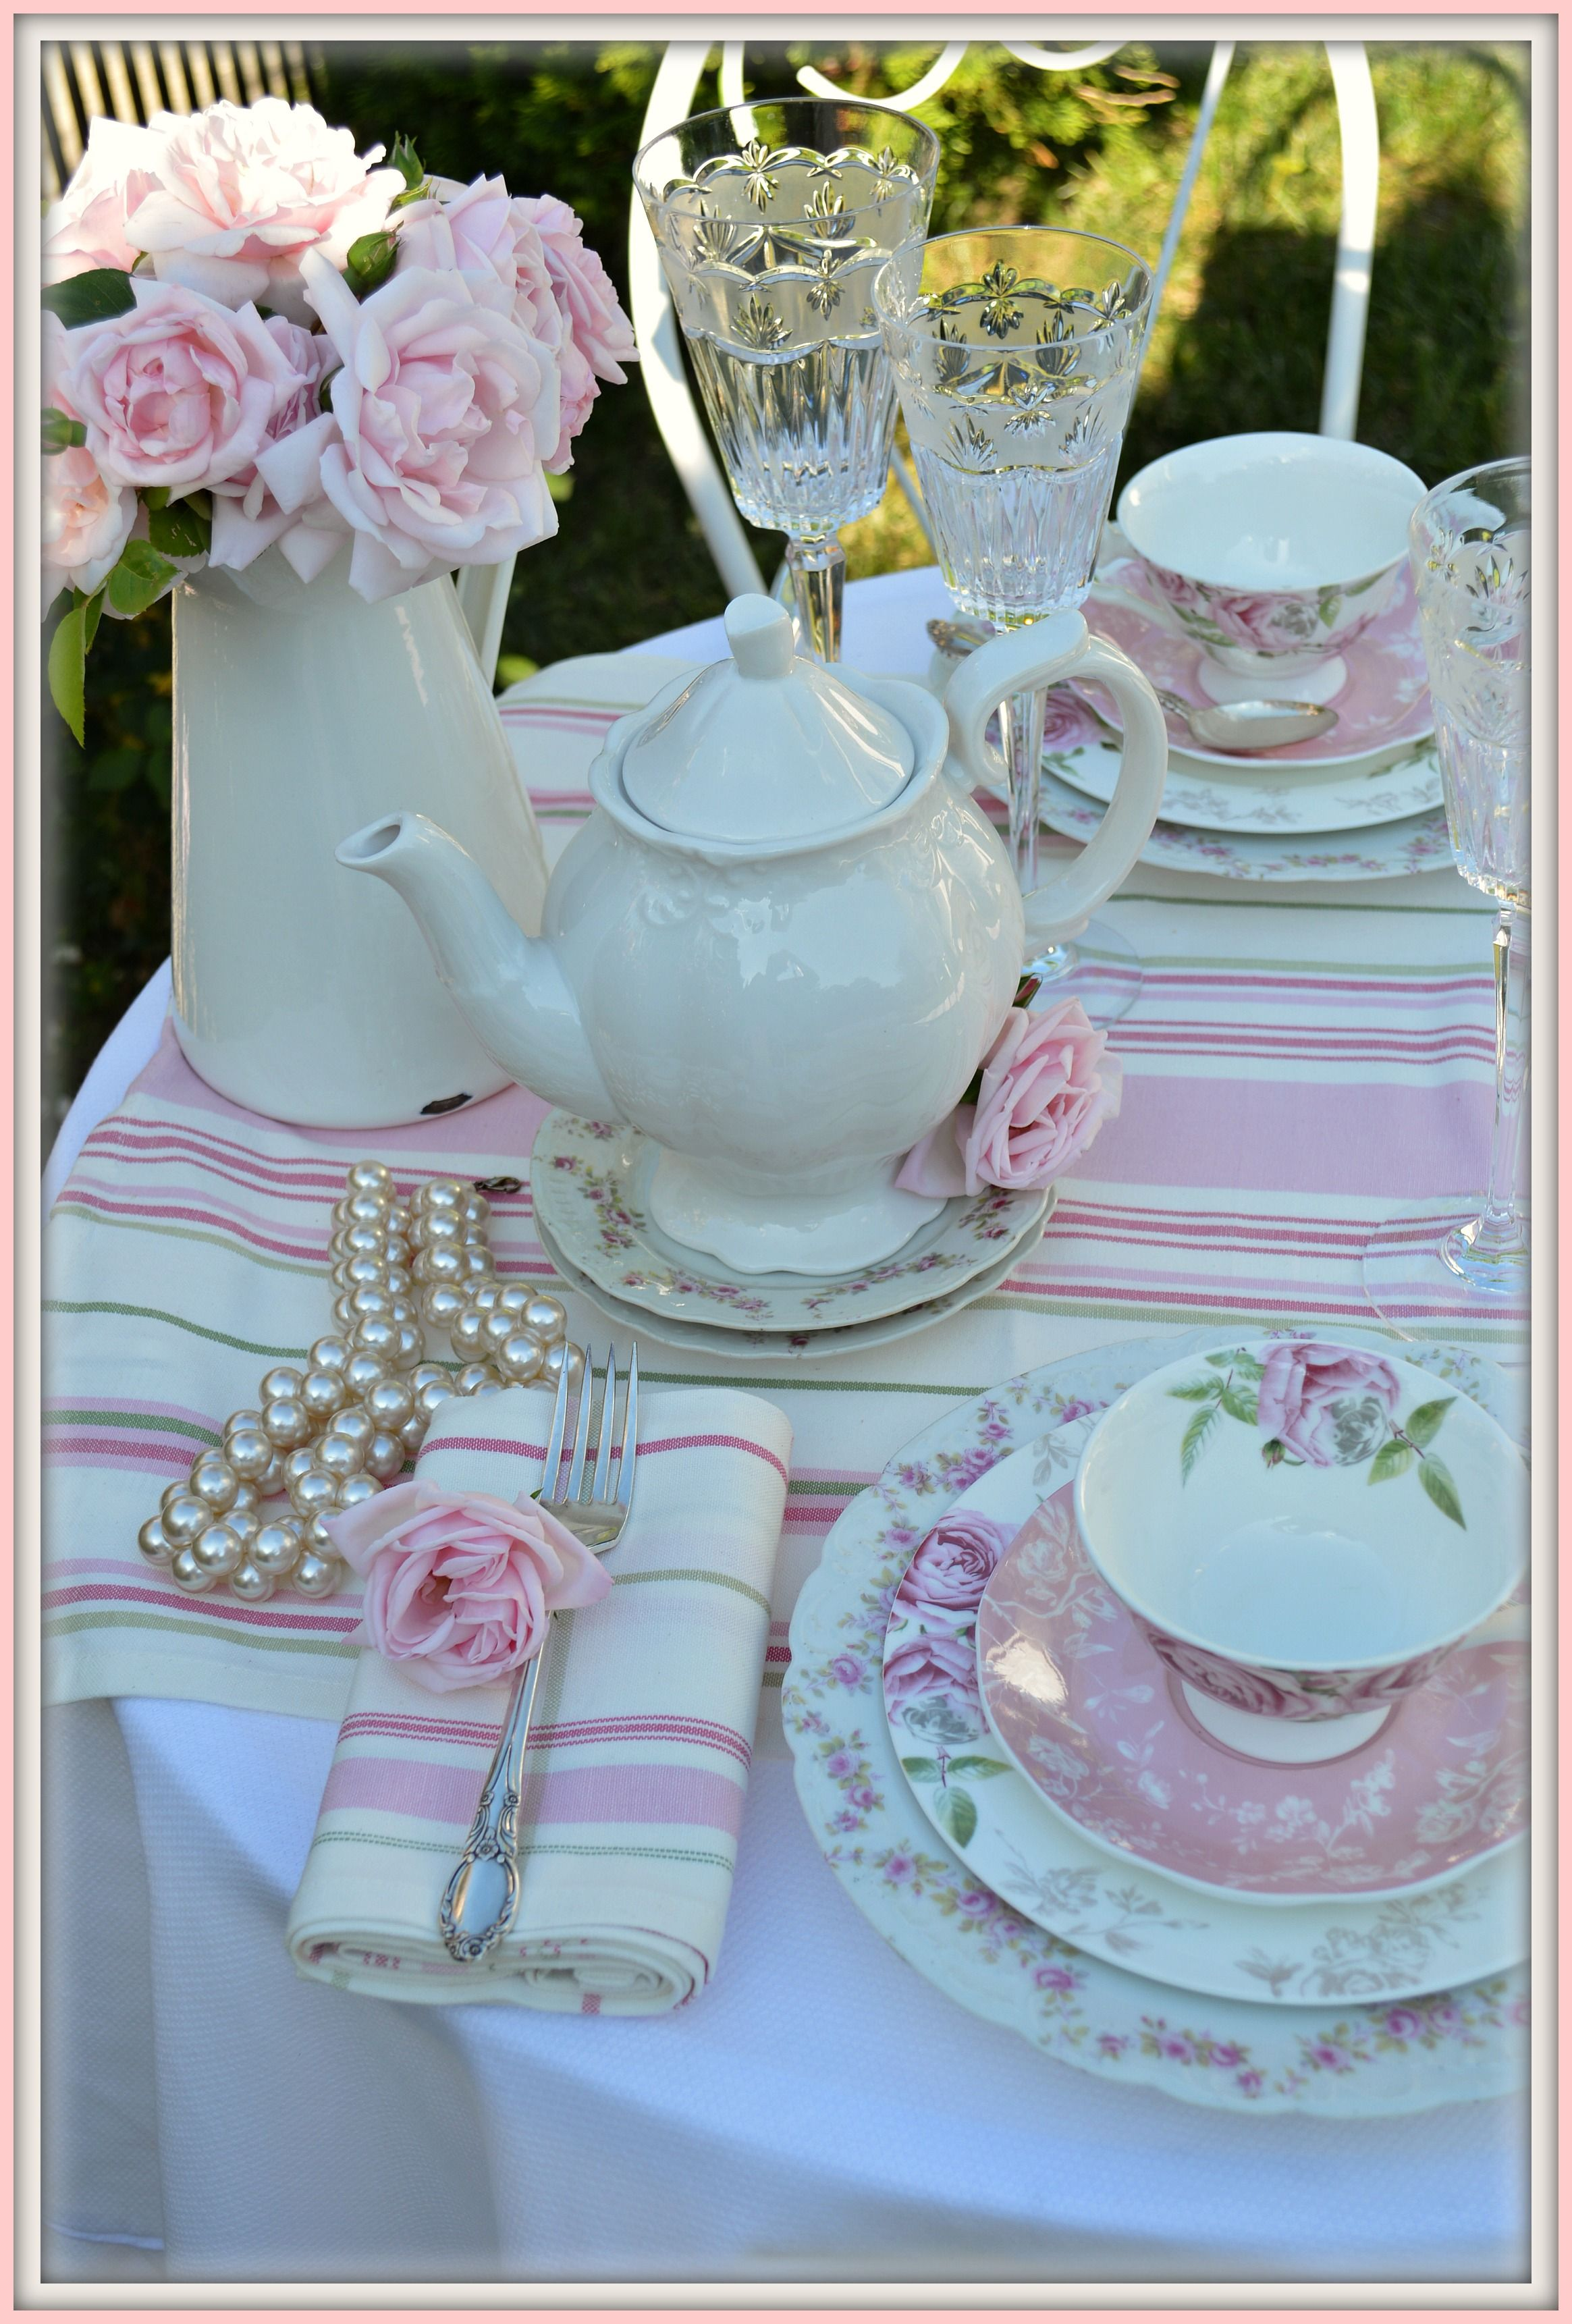 Tea-Rosemary and Thyme Celebrating Roses & roses http://www.rosemary-thyme.blogspot.com/2014/06/celebrating ...